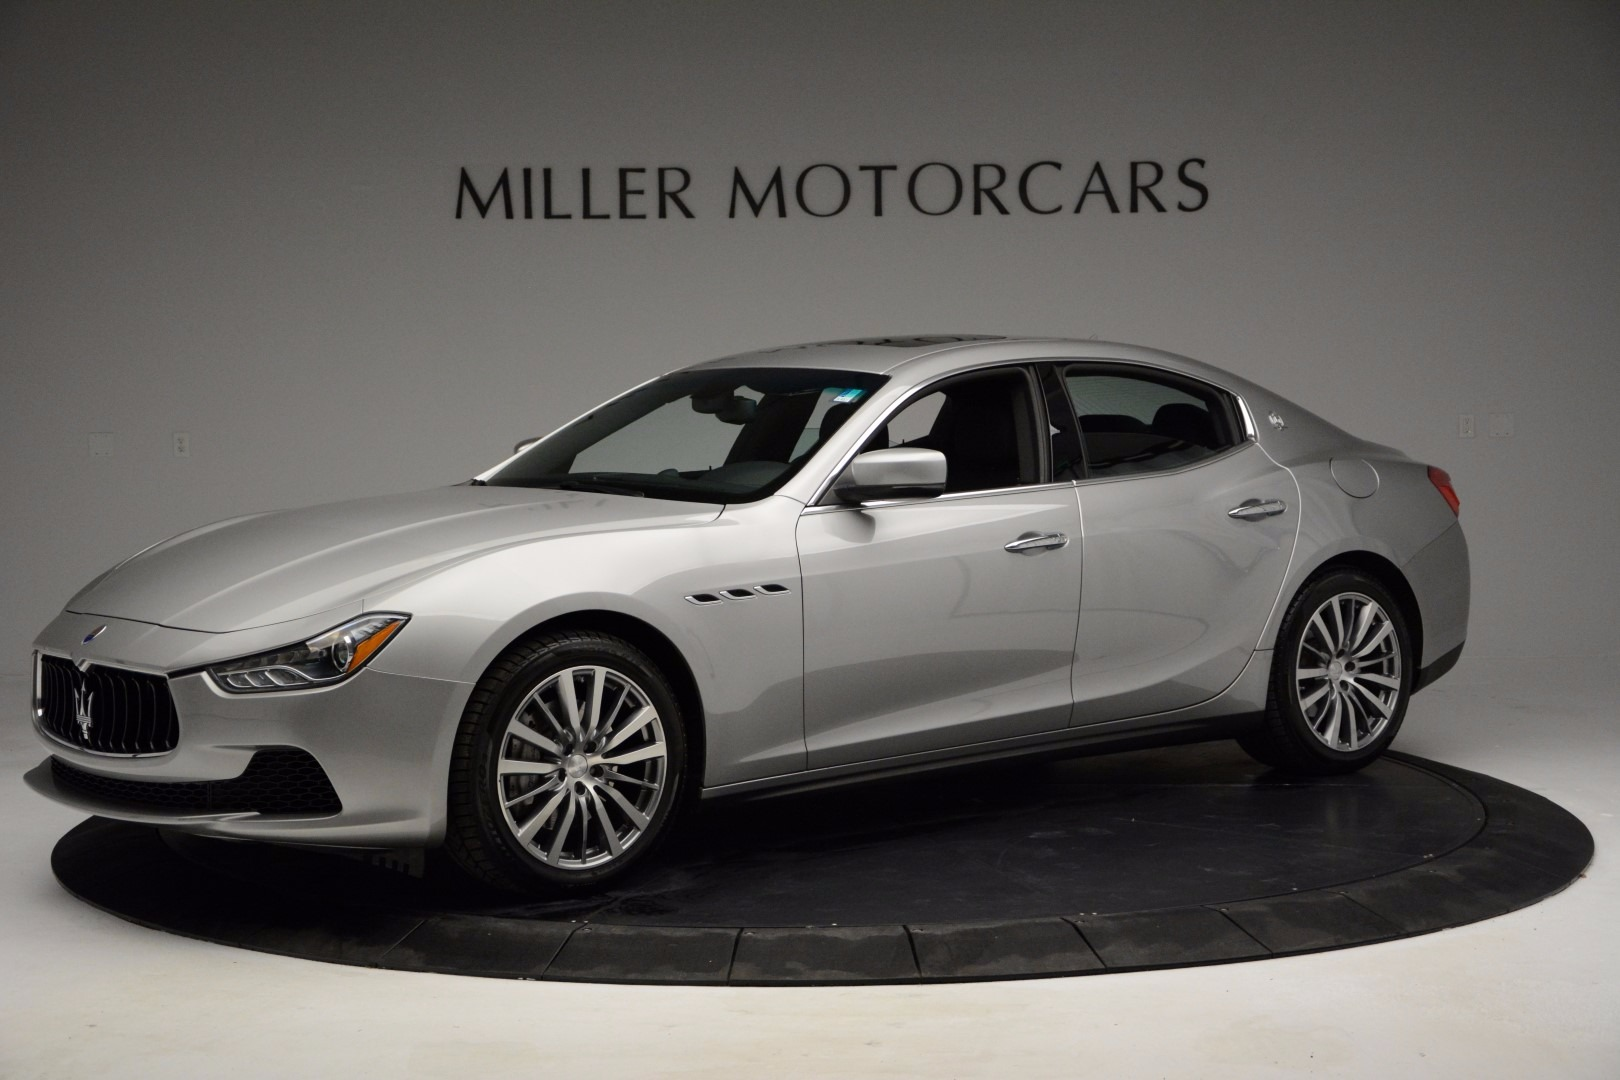 Used 2014 Maserati Ghibli for sale Sold at Maserati of Greenwich in Greenwich CT 06830 1